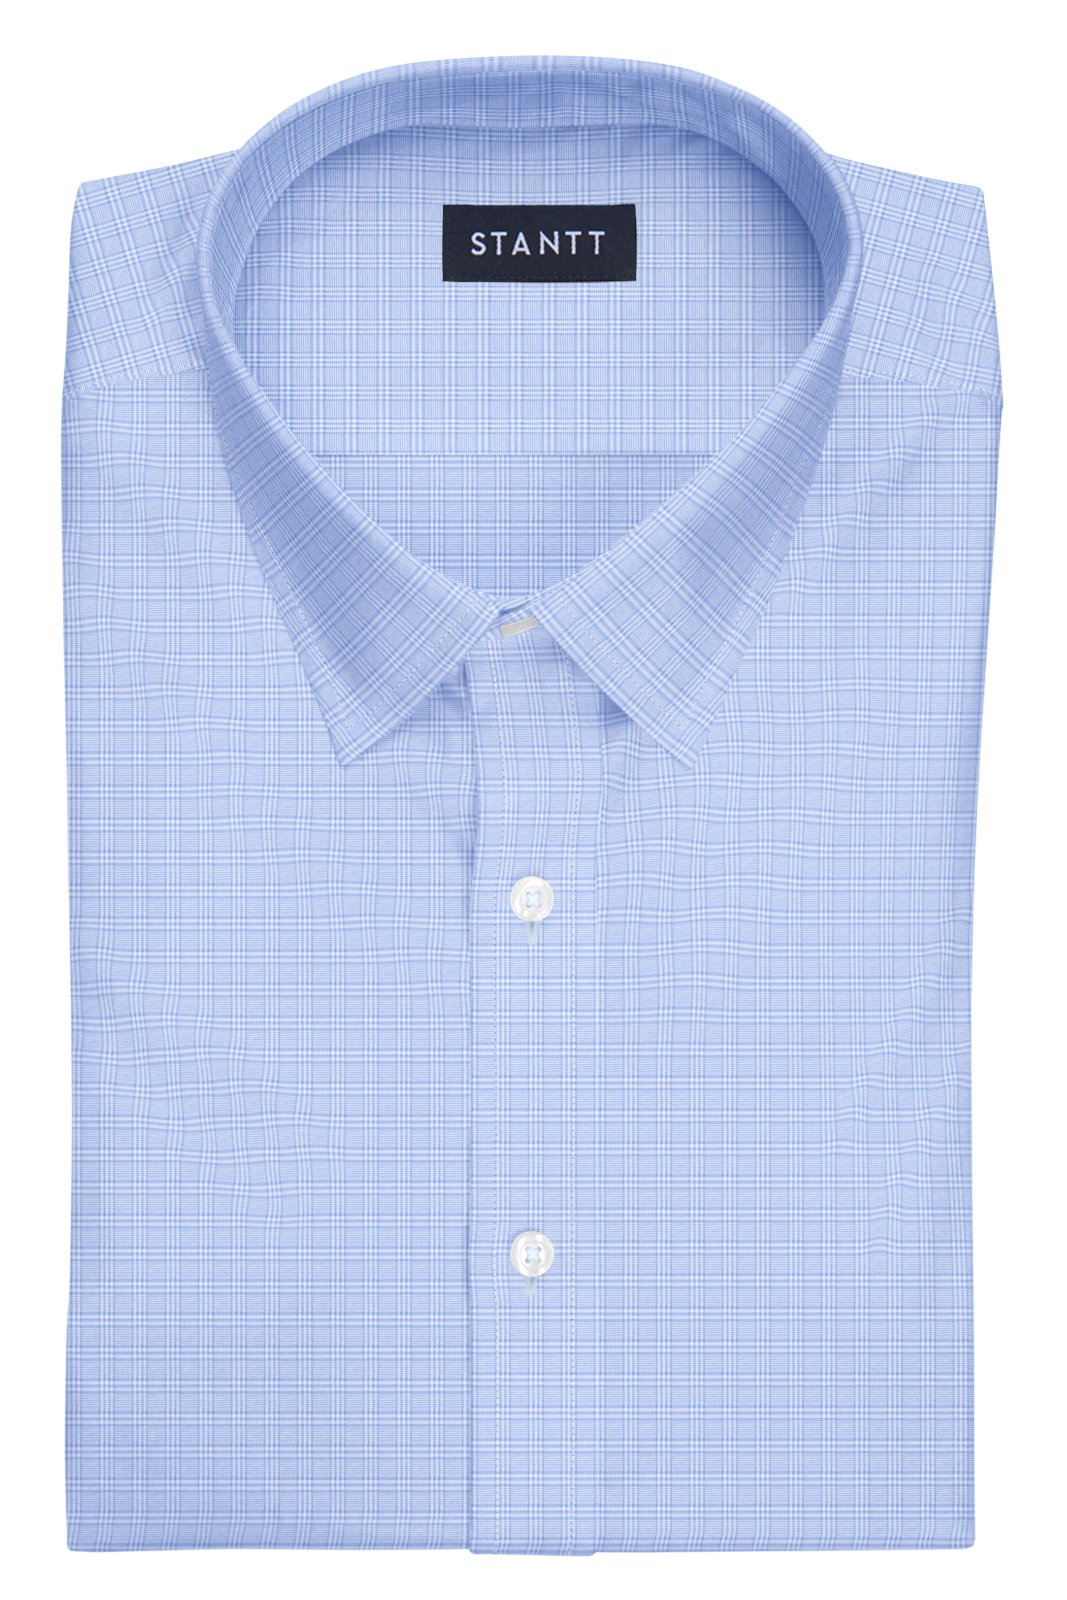 Light Blue Mini Raker Check: Semi-Spread Collar, Barrel Cuff